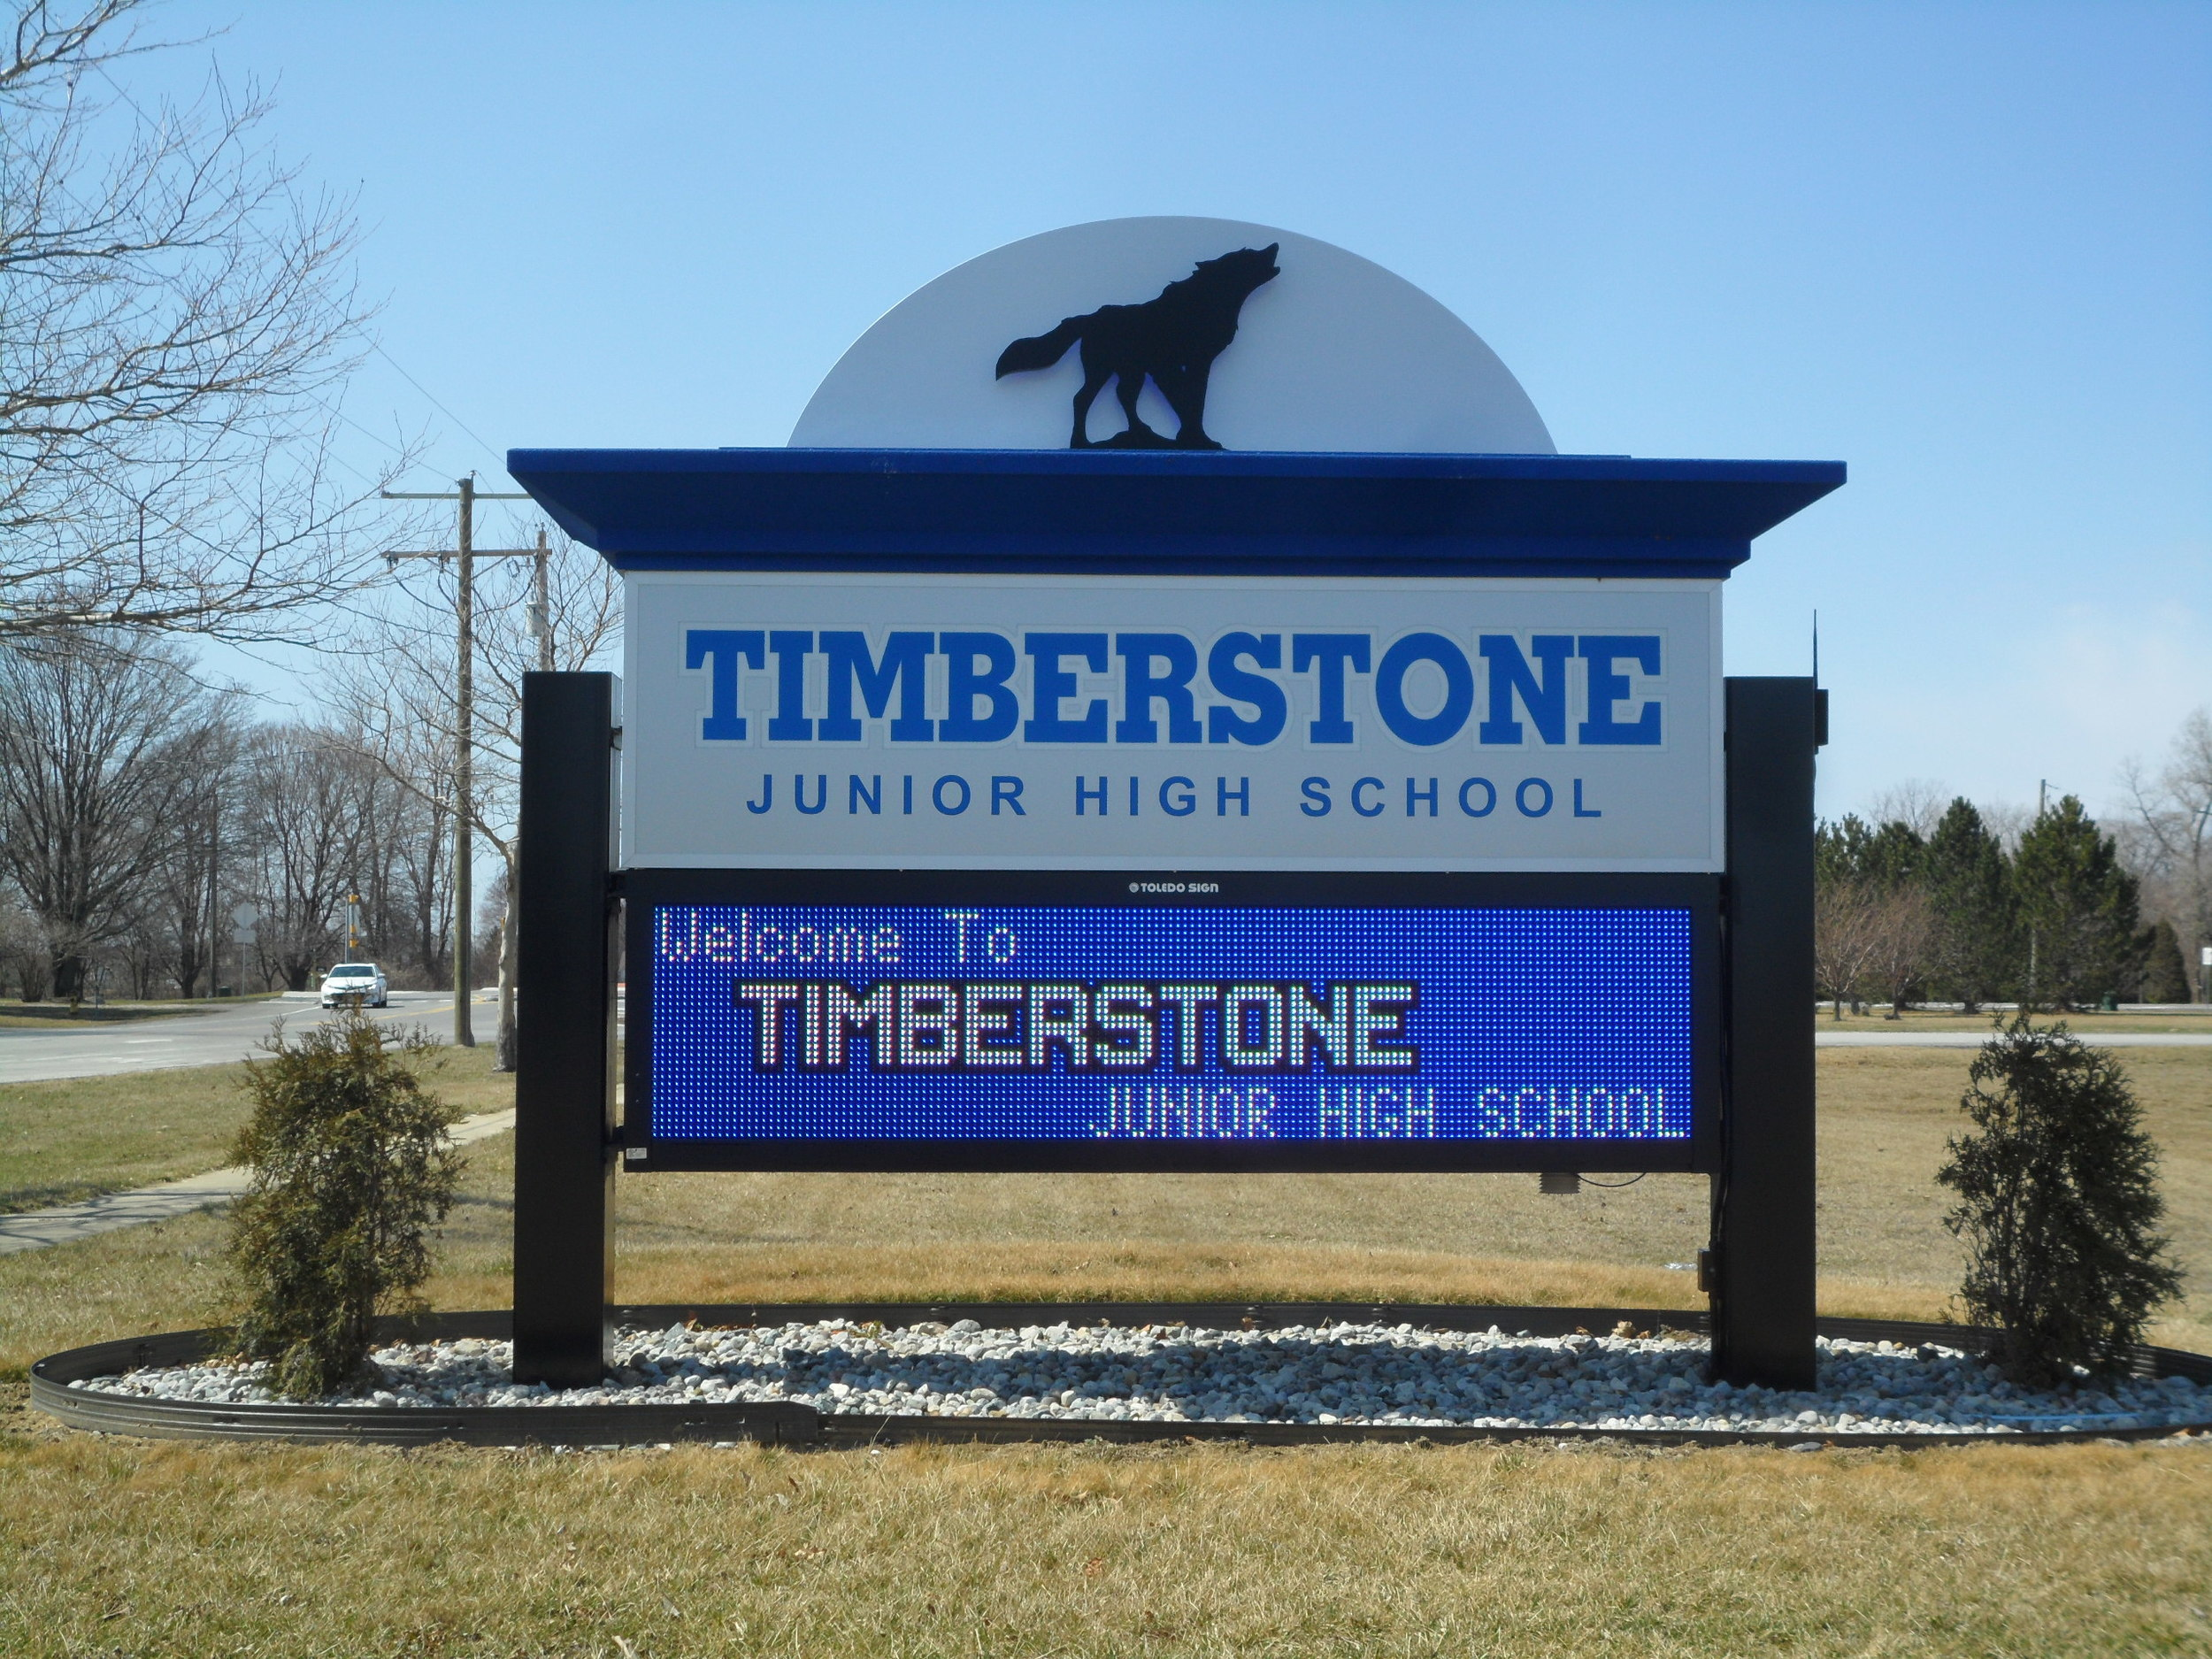 Timberstone Junior High School